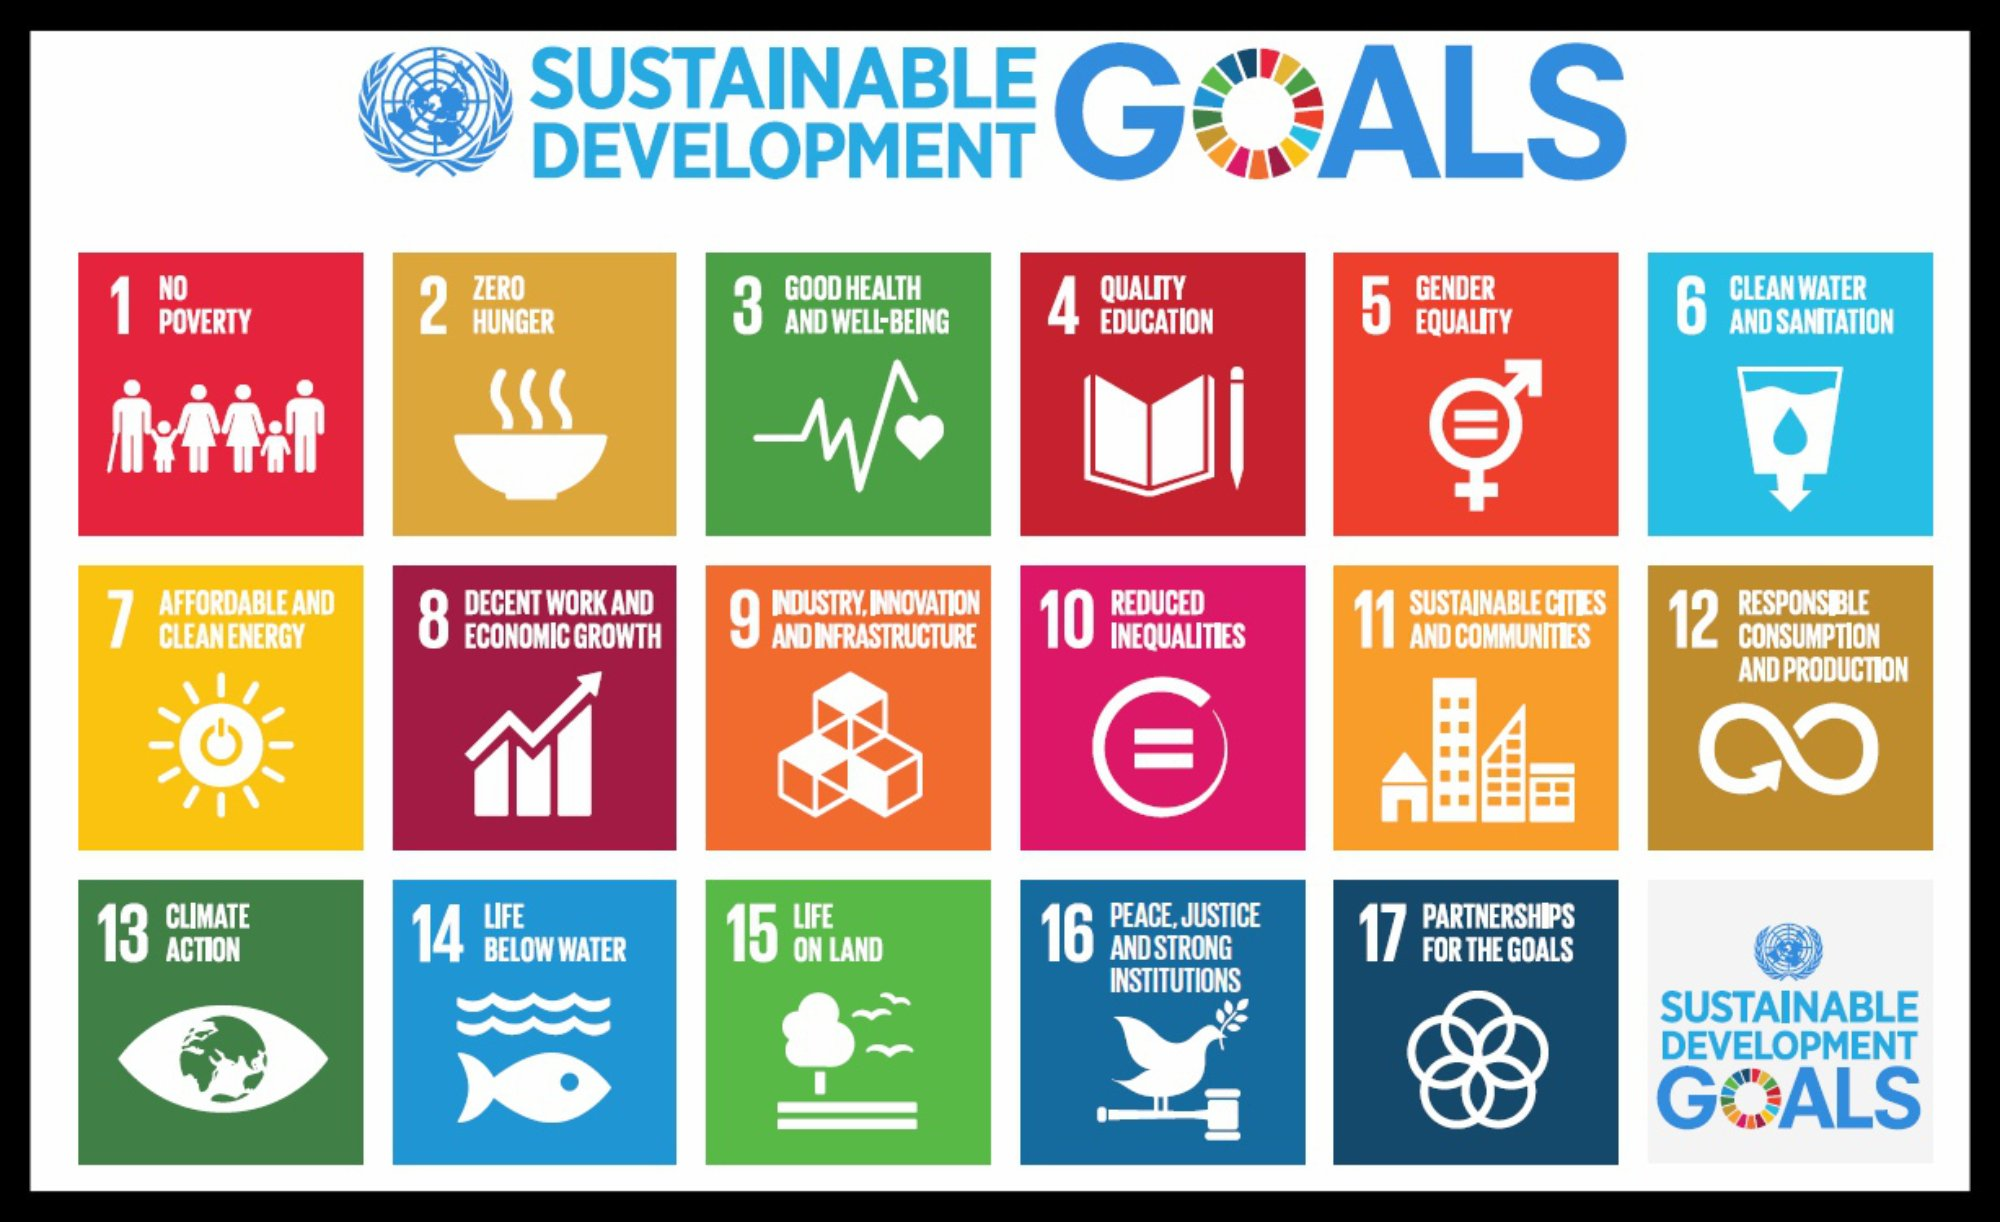 business sustainable development With companies having markedly improved sustainable development activities and re- porting over the last few years, it could be tempting for businesses to look at good work they're already doing and reframe communications to align their actions to the sdgs.